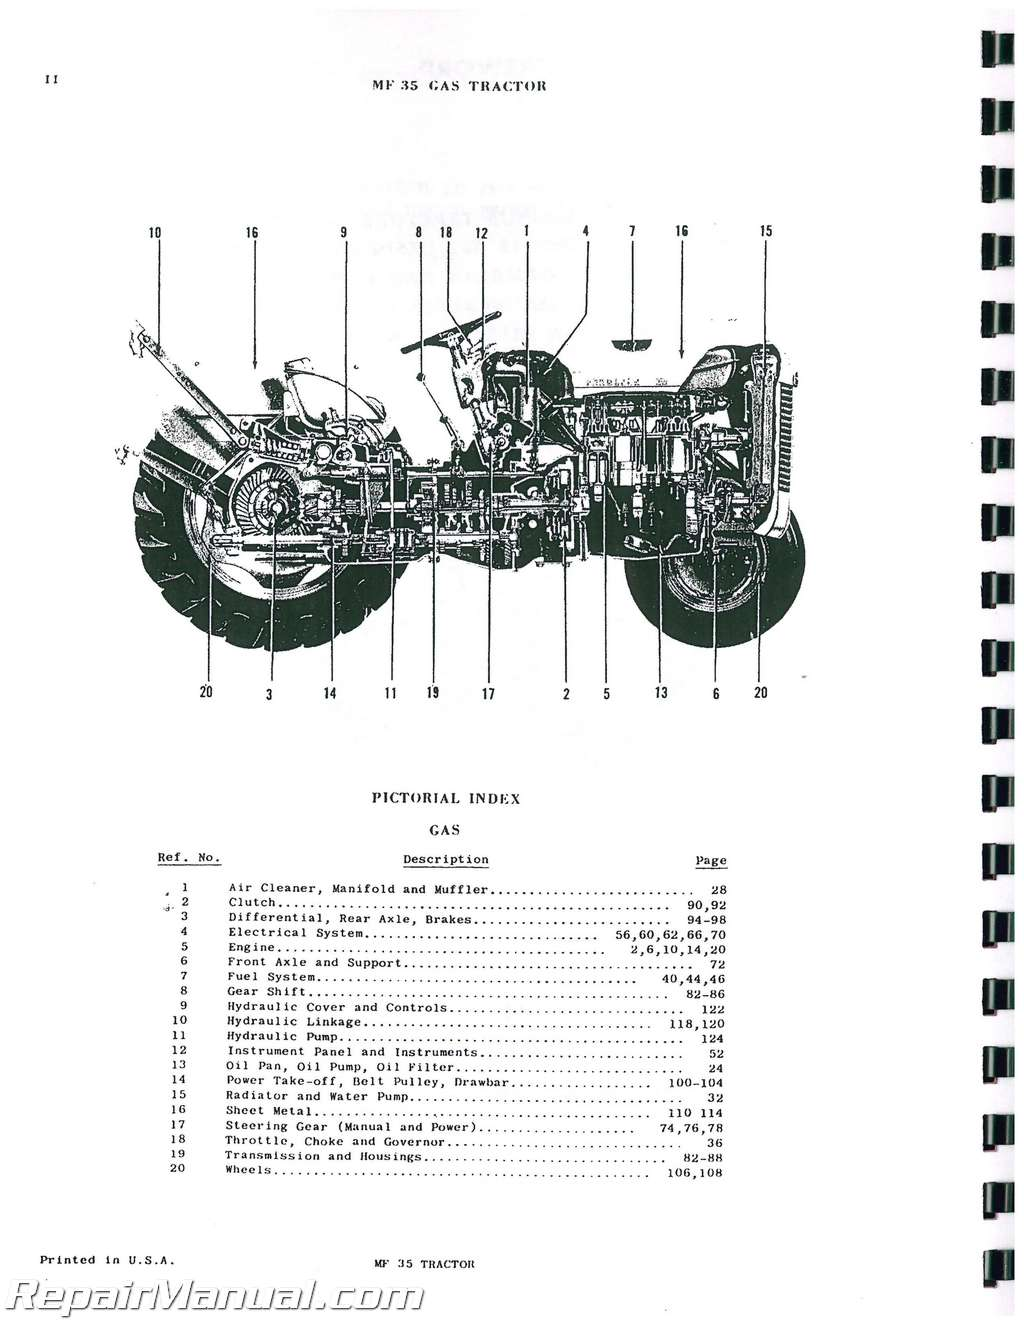 Massey Ferguson 180 Parts Diagram : Massey ferguson mf gas diesel tractor parts manual